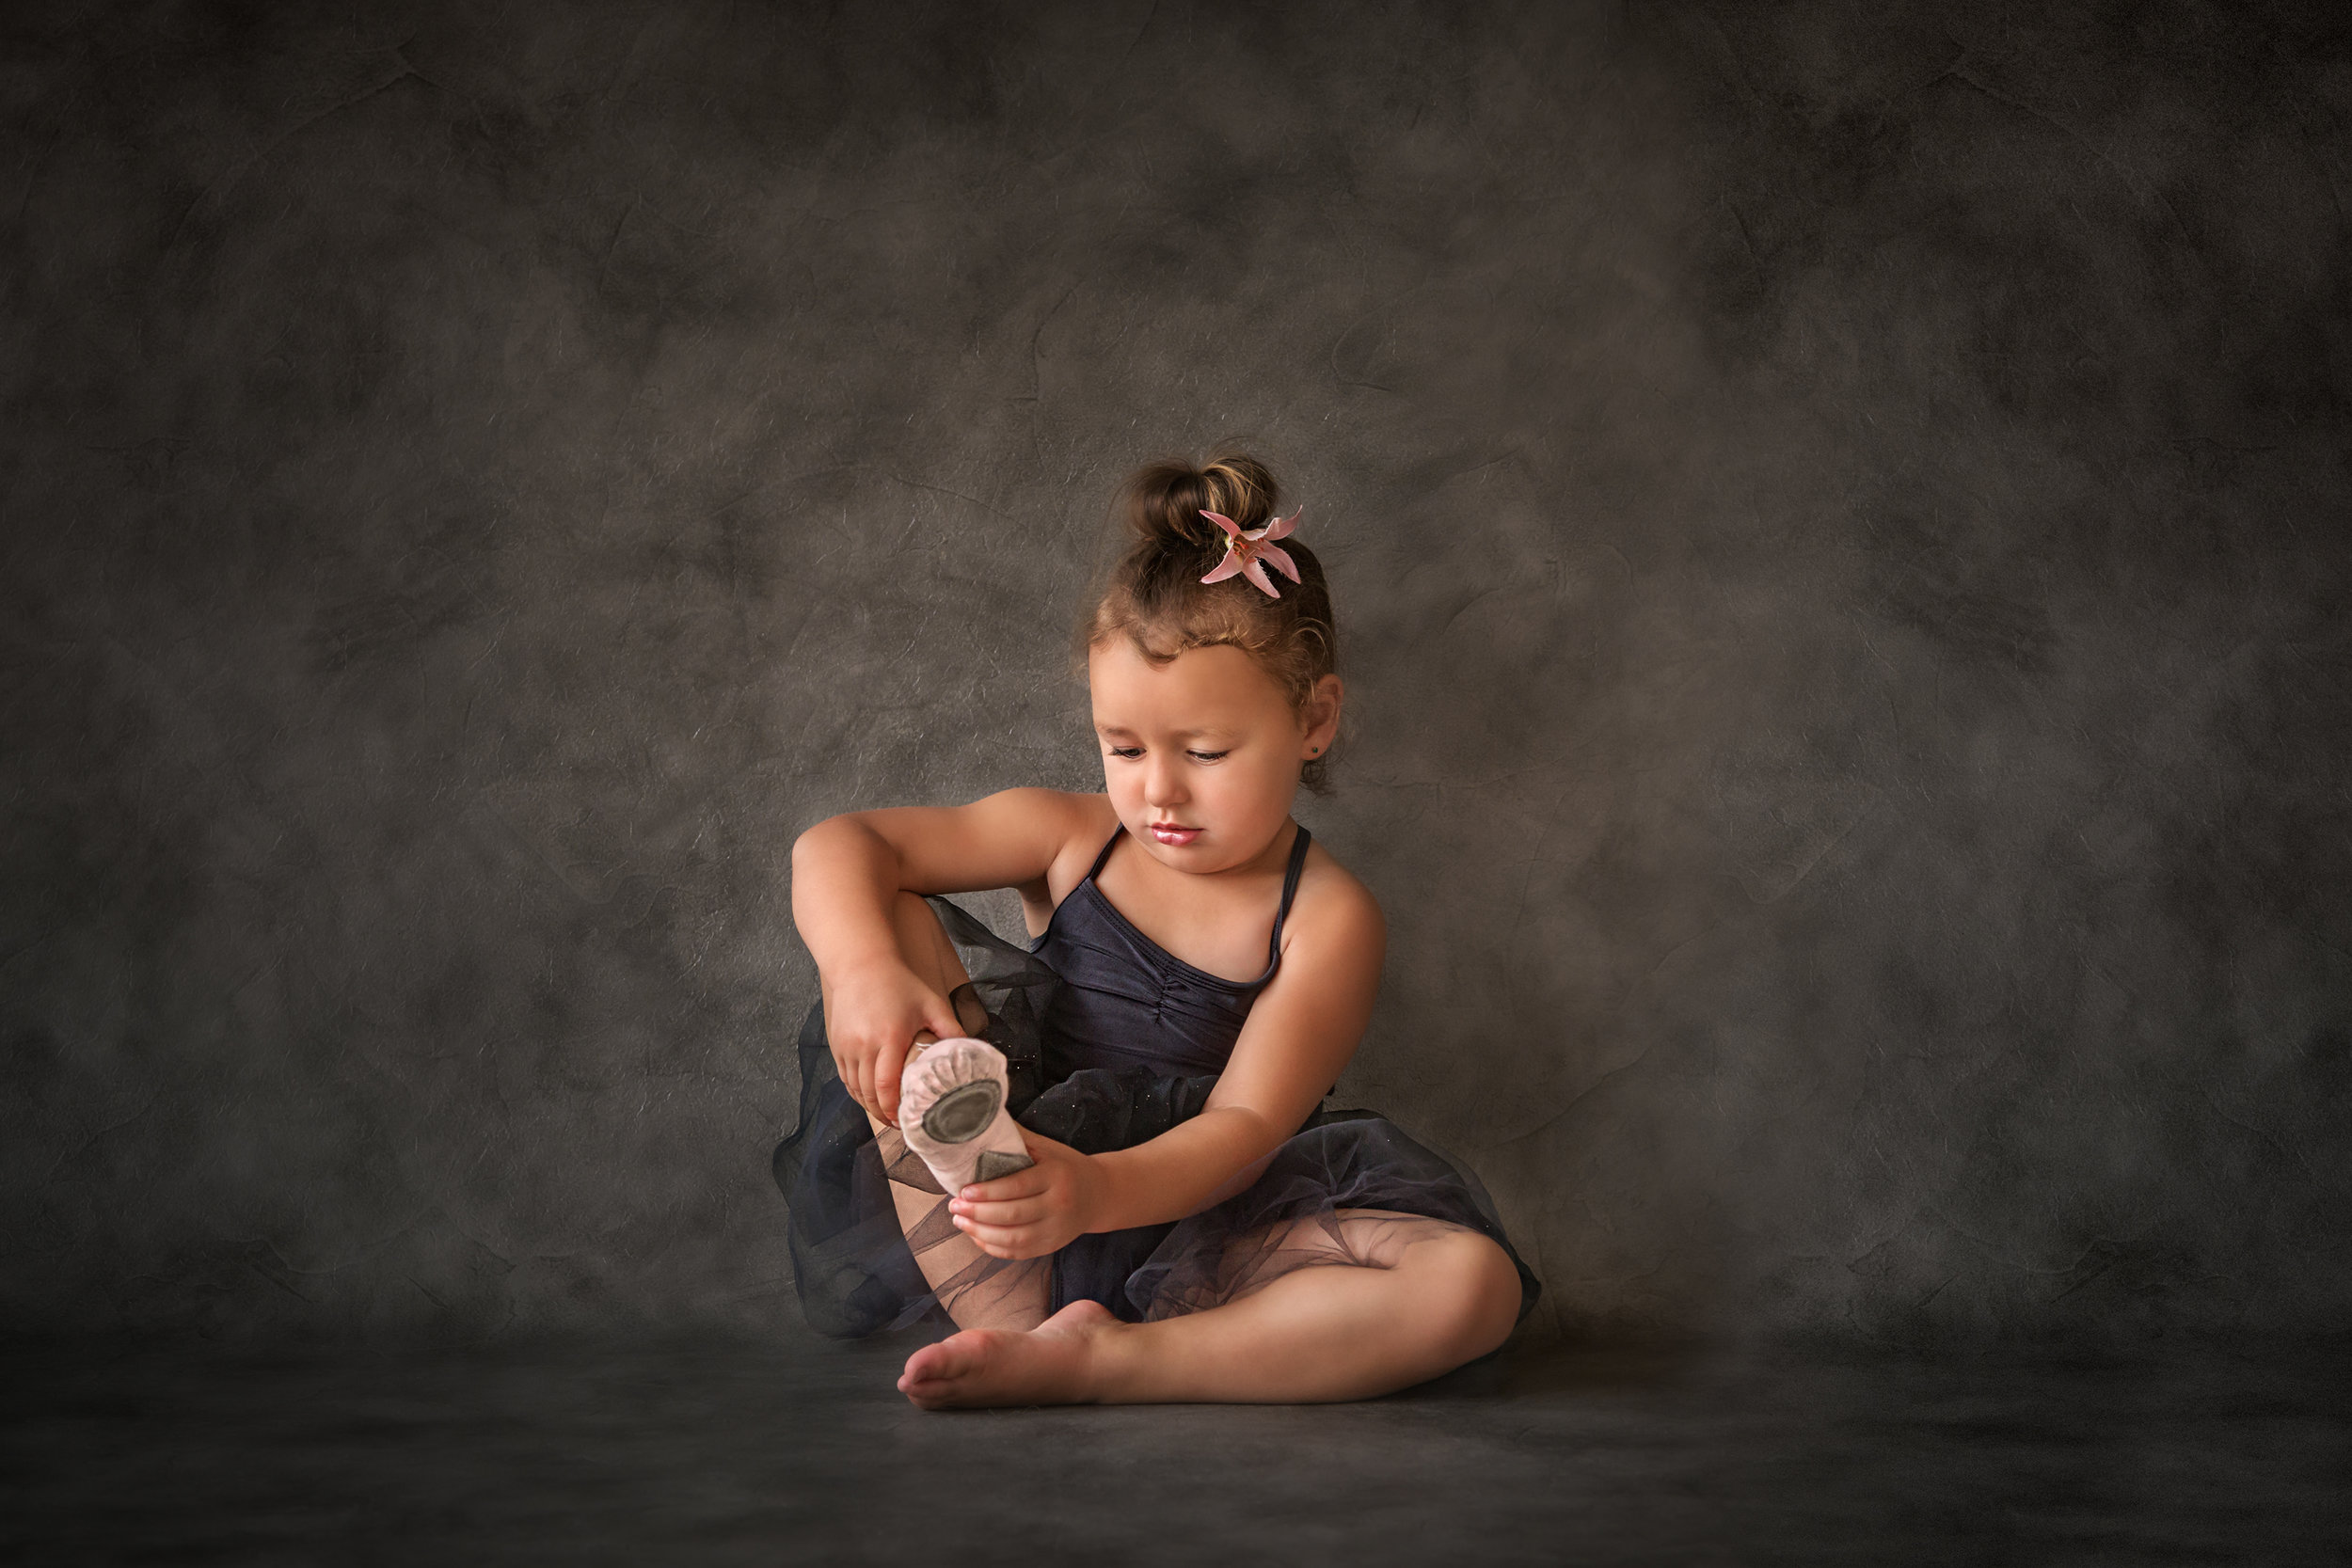 Little Ballerina, Helen Wilkin FPSNZ, George Chance Colour Print trophy and PSNZ Gold Medal for Best Colour Print